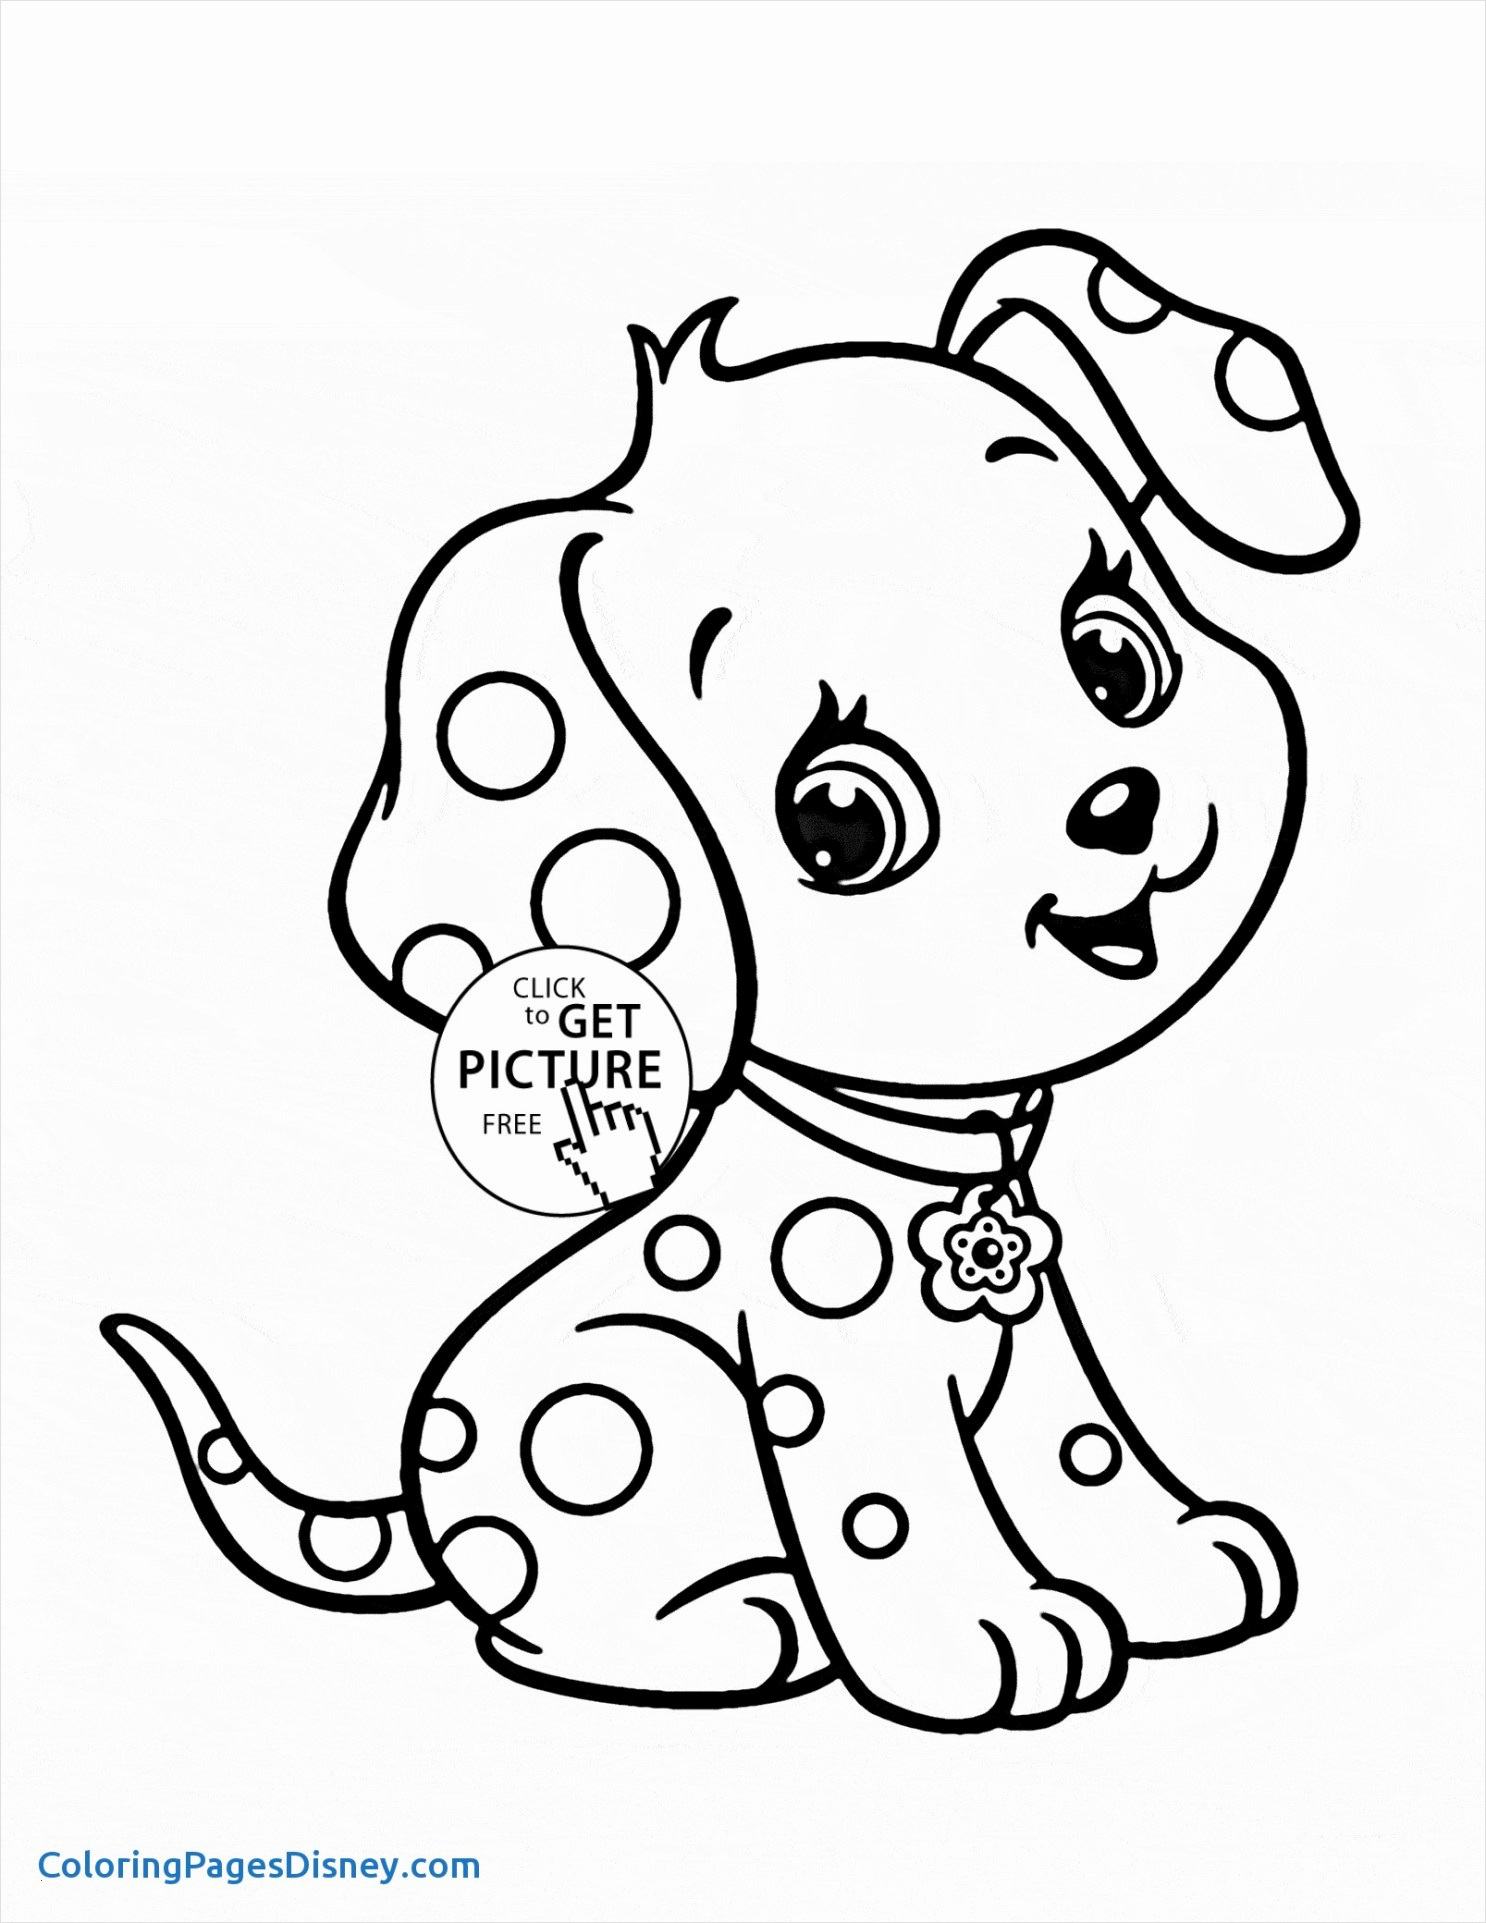 Wellie Wishers Coloring Pages  Collection 7m - Free For Children